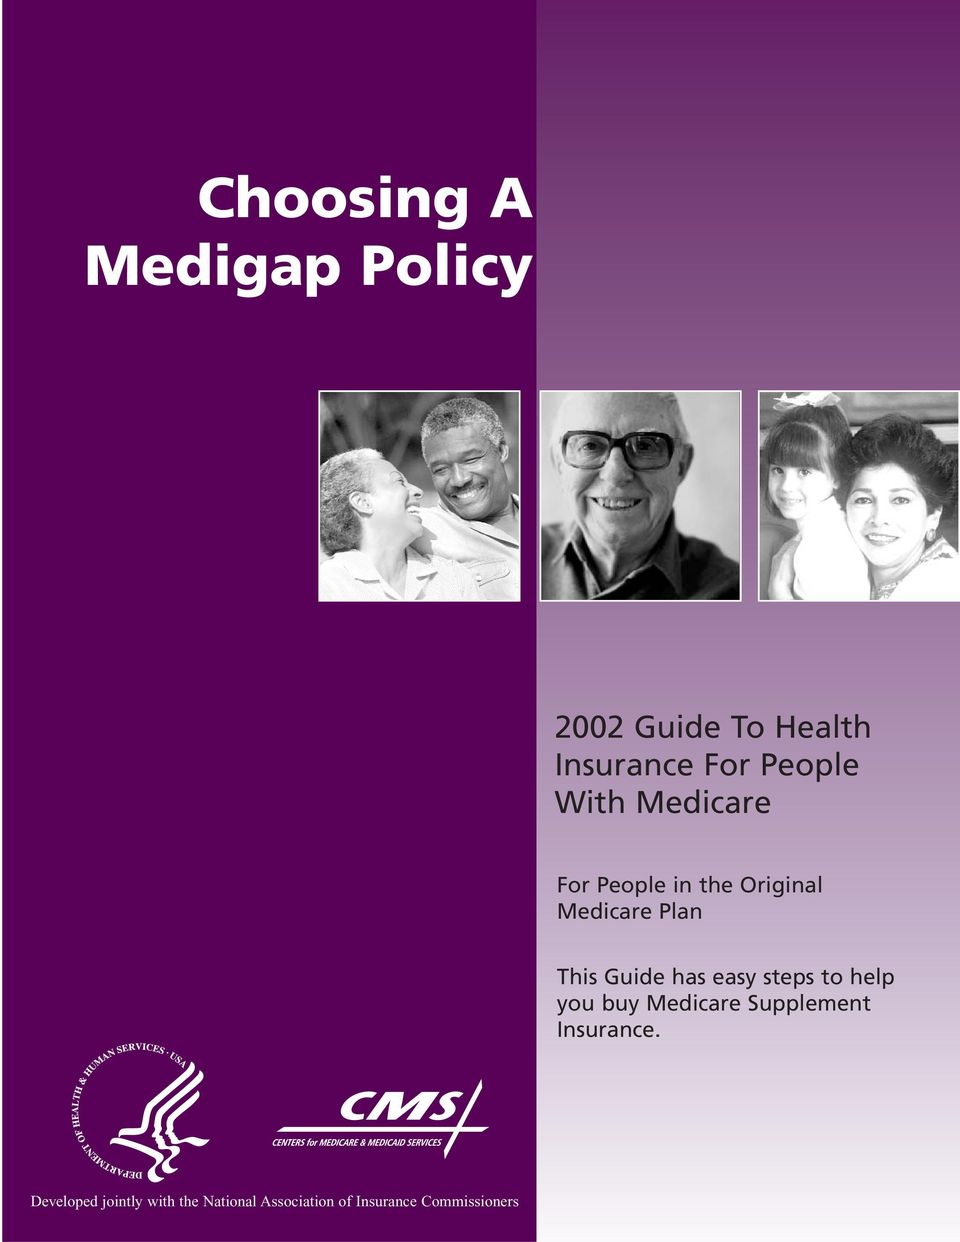 has easy steps to help you buy Medicare Supplement Insurance.